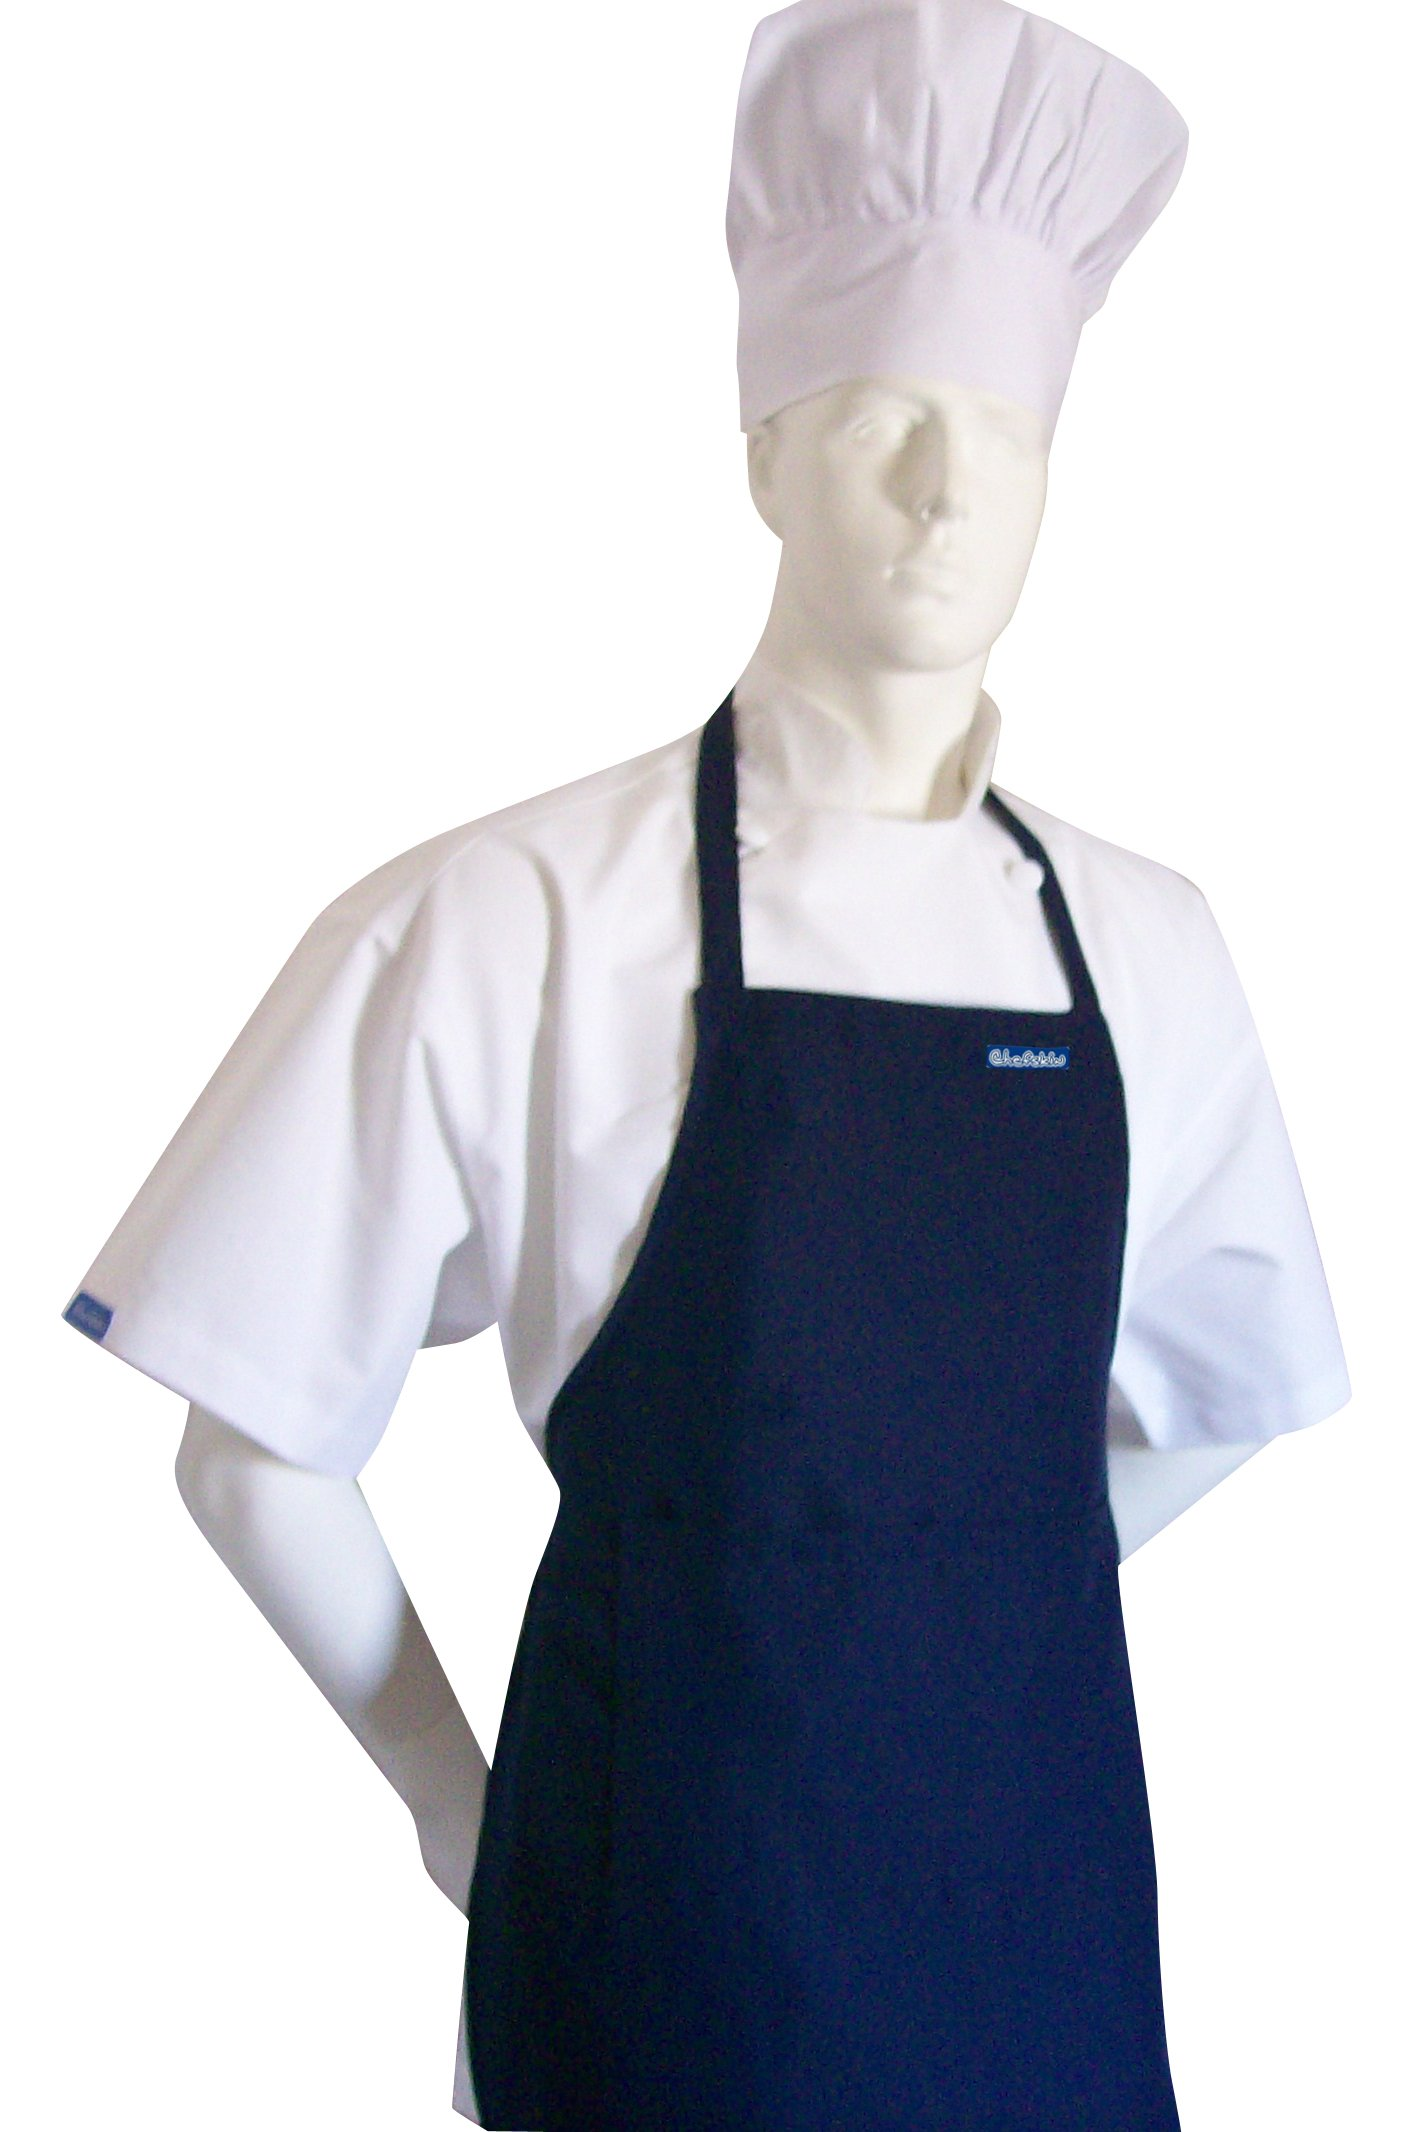 Chefskin TALL Chef Set (Apron+hat) Adjustable, Ultra Lite Fabric (NAVY APRON+WHITE HAT)